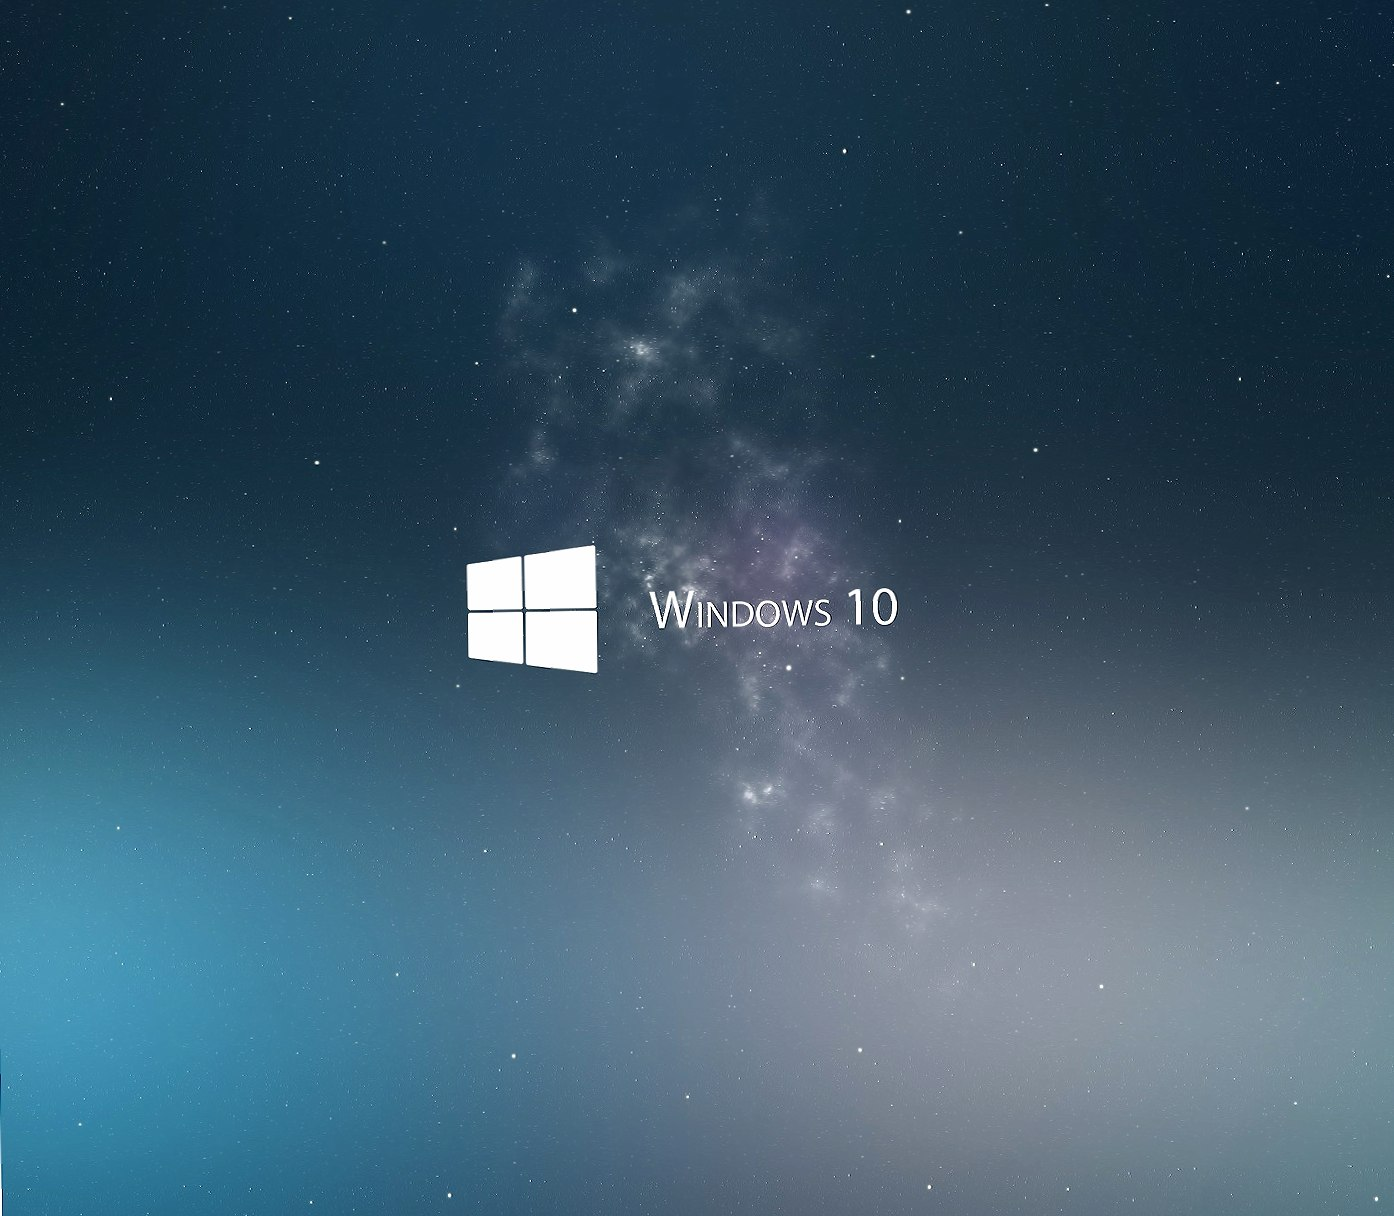 Win10 wallpapers HD quality